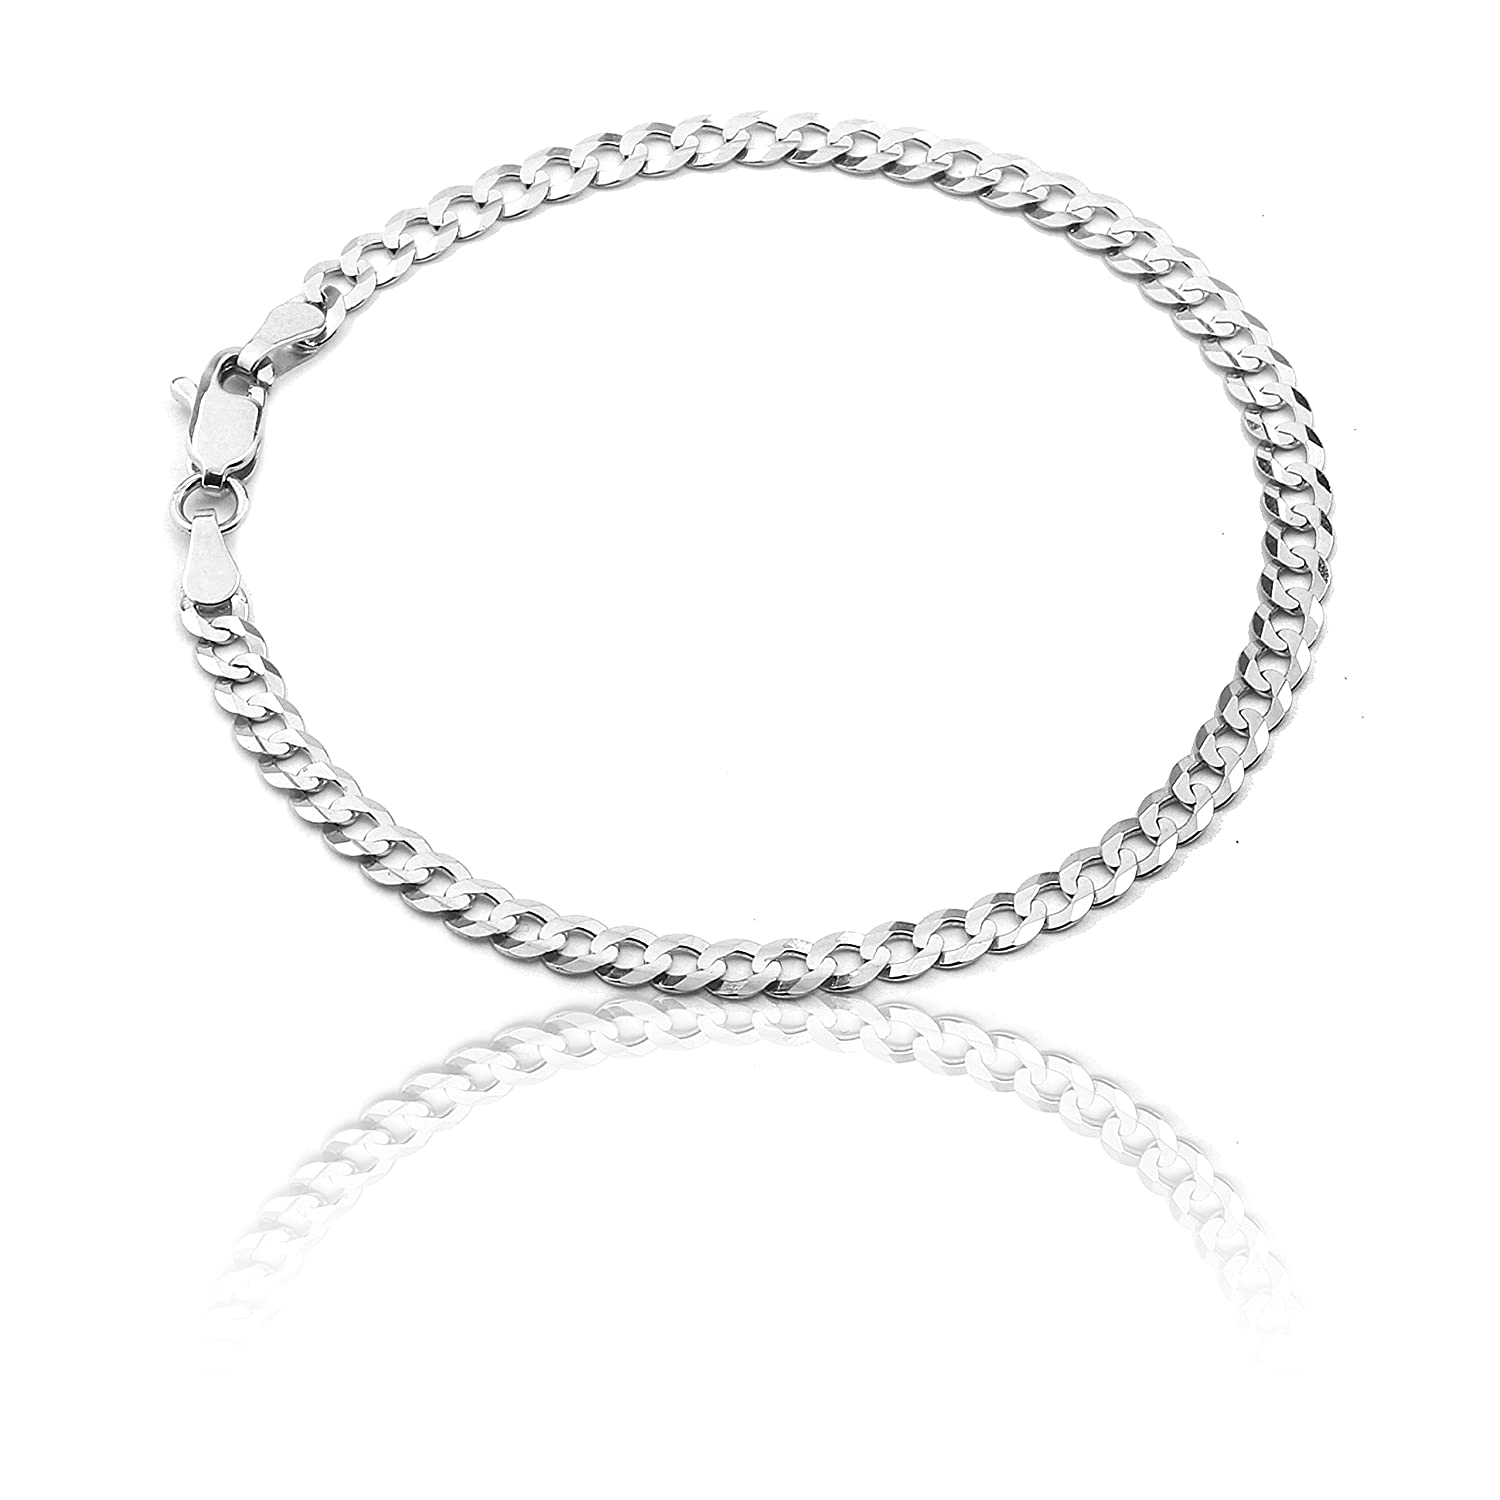 wheat himalayan products sterling anklets sp silver jewelry italian chain gems fine anklet